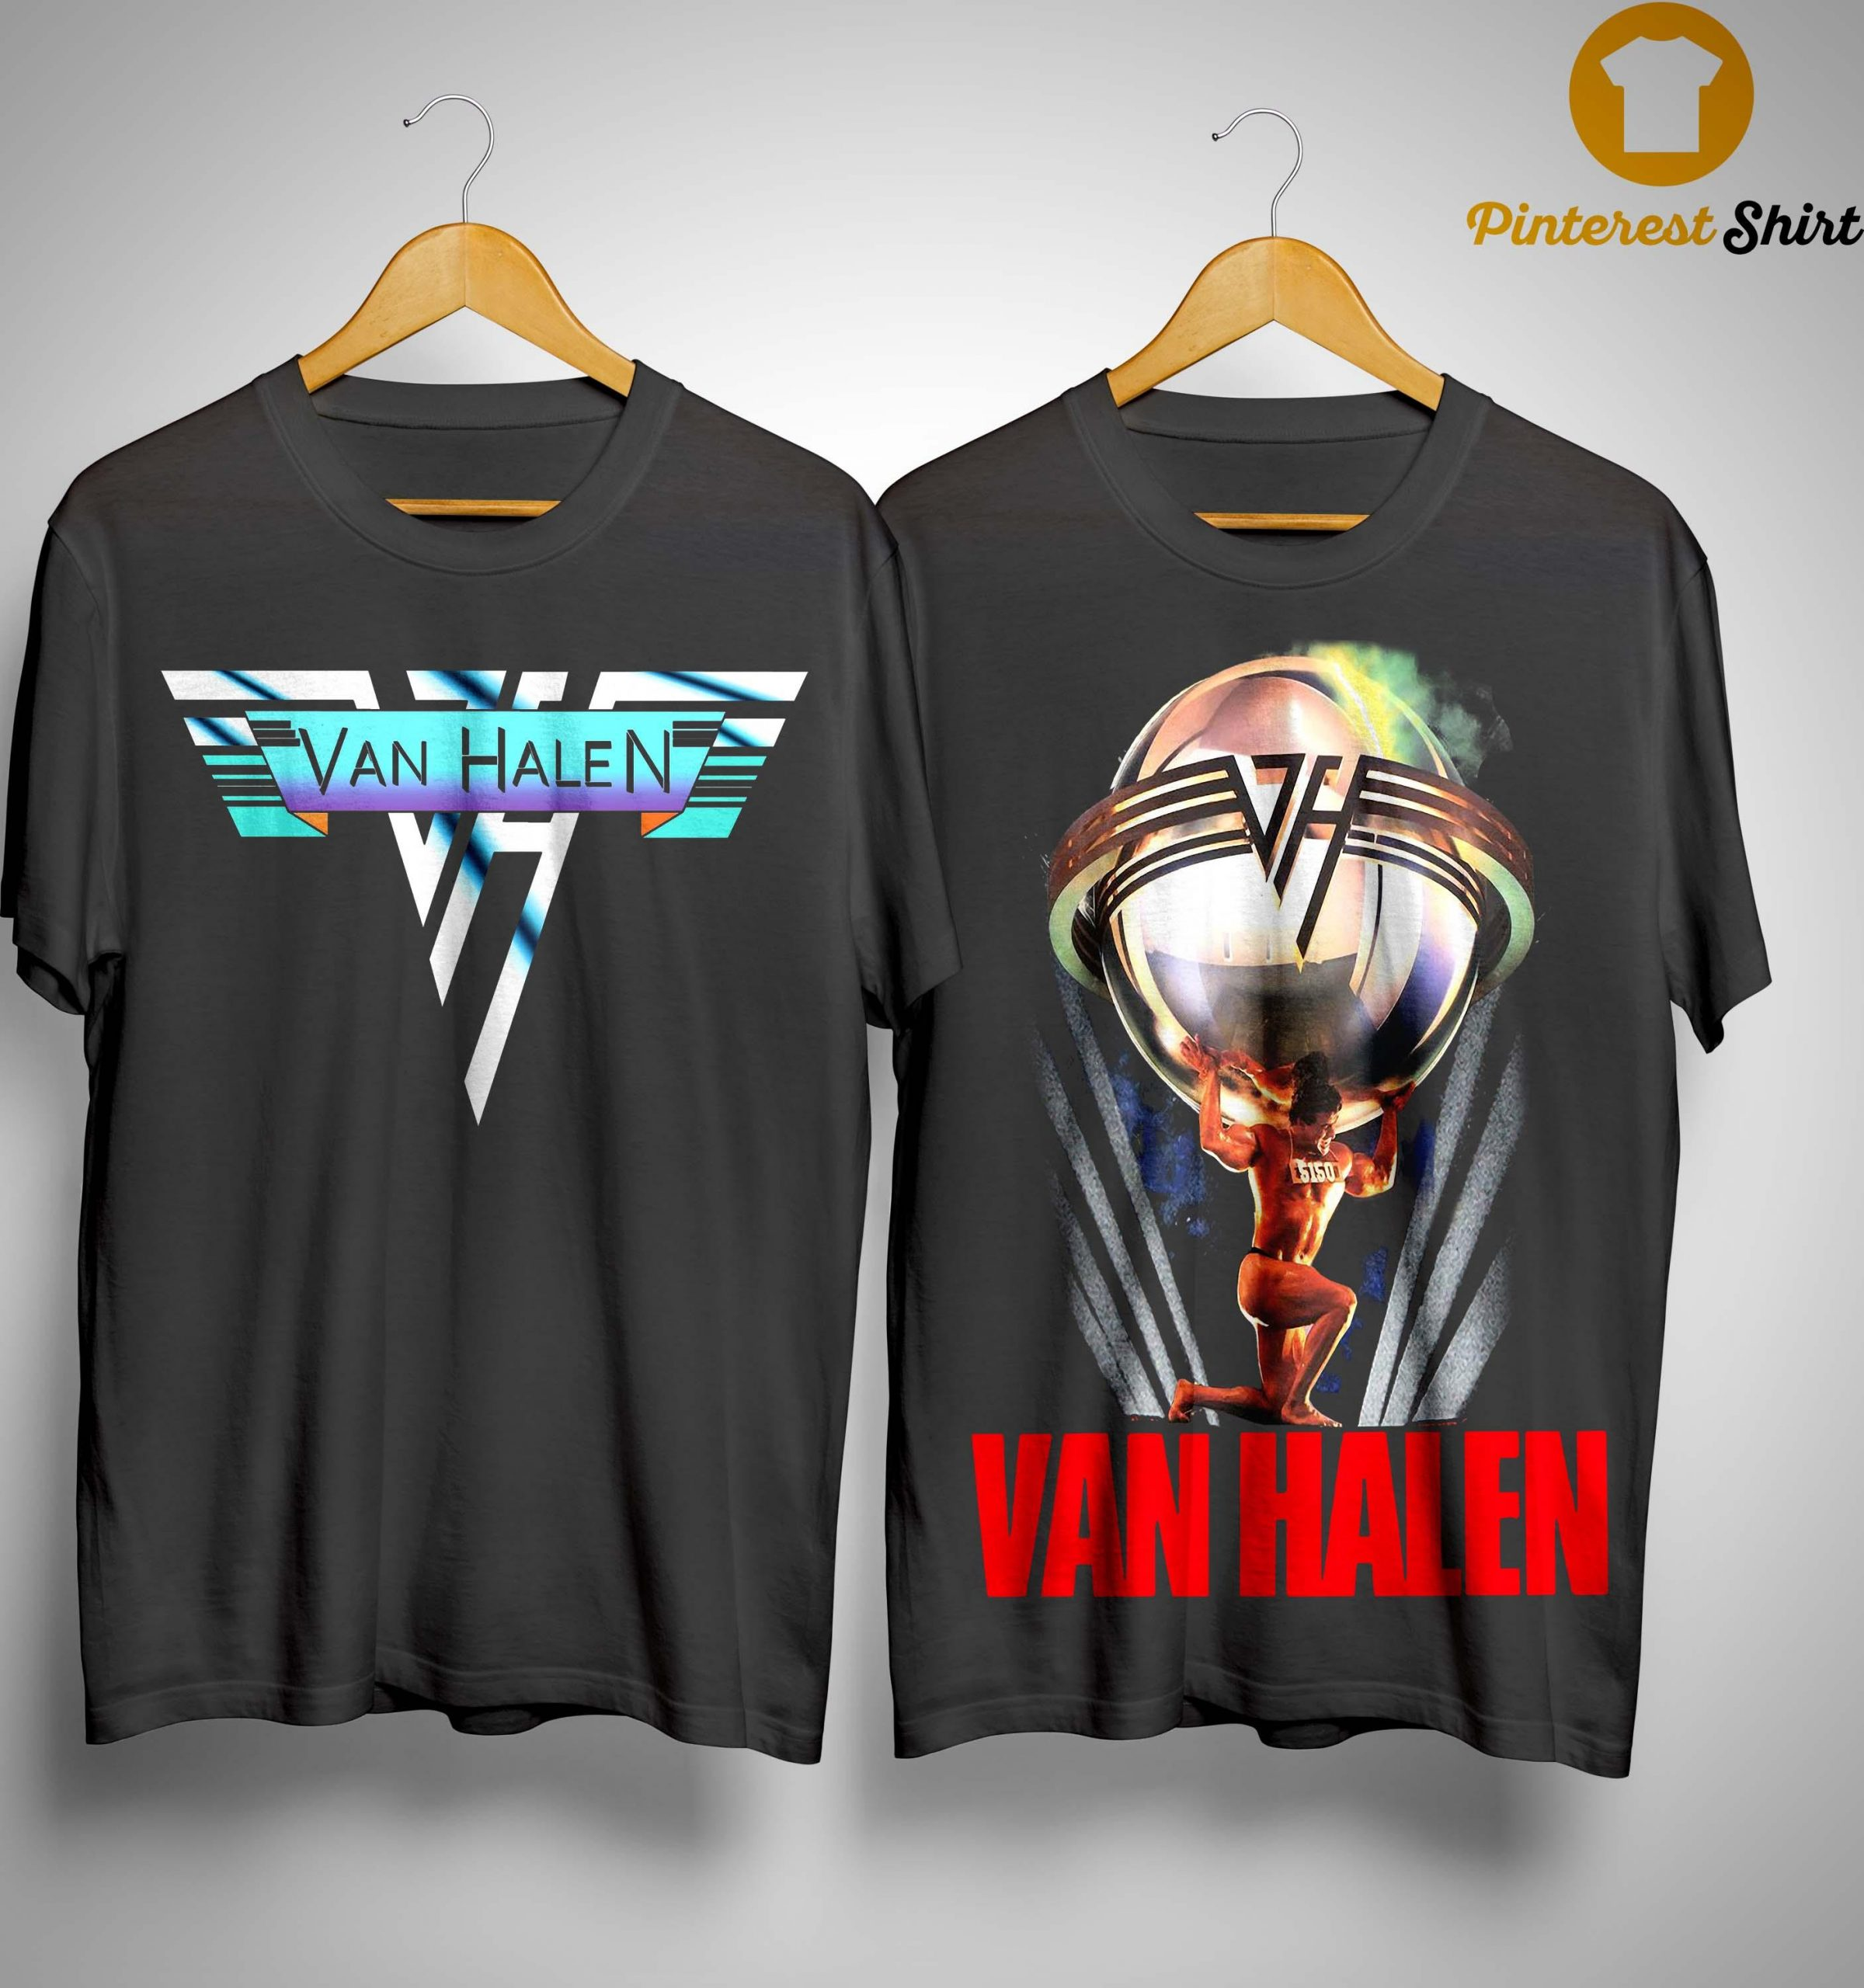 Wedding Singer Van Halen Shirt